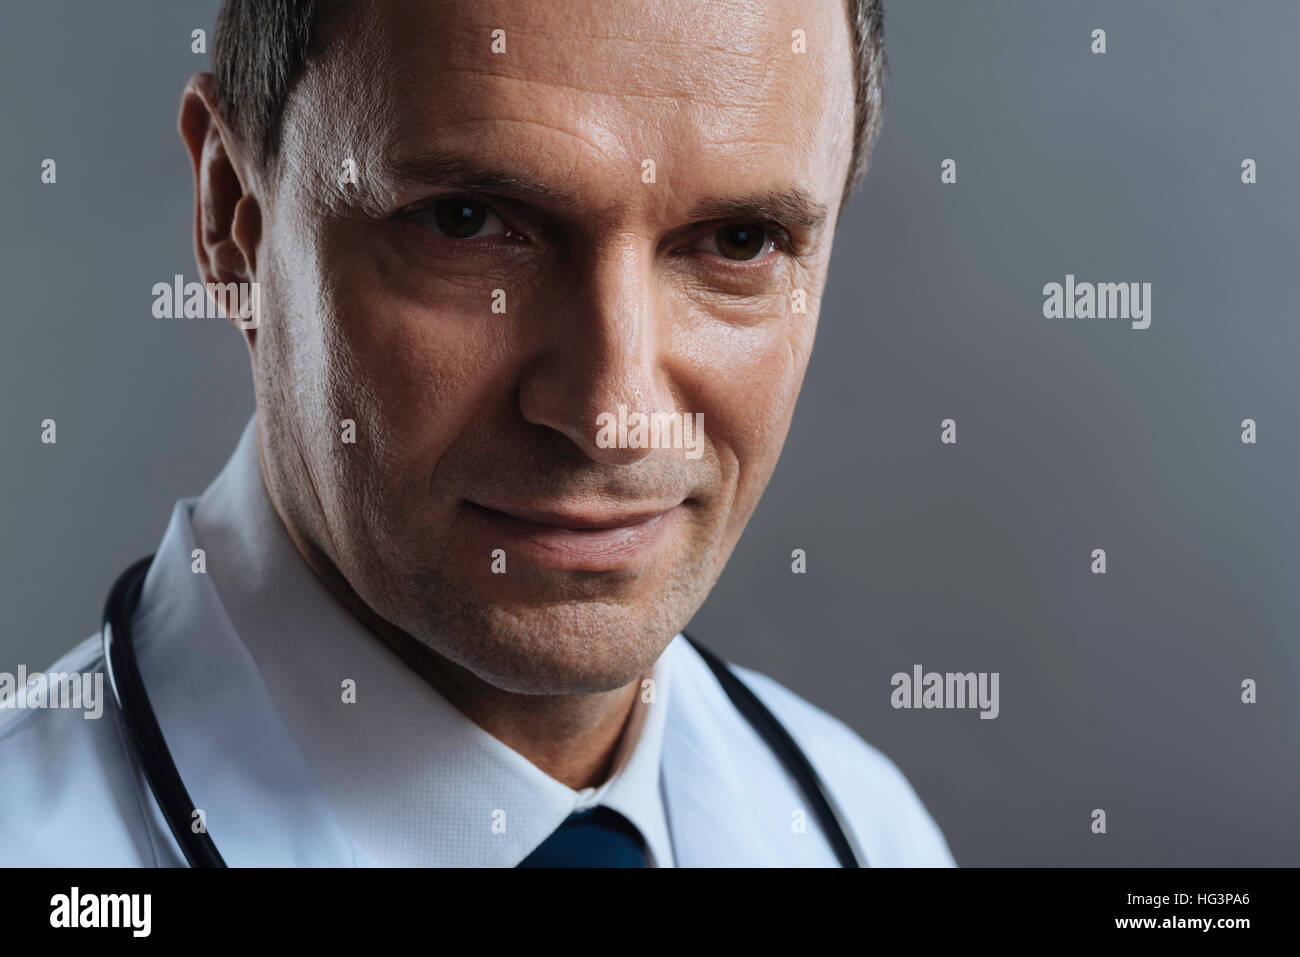 Close up of a doctor standing on grey background - Stock Image